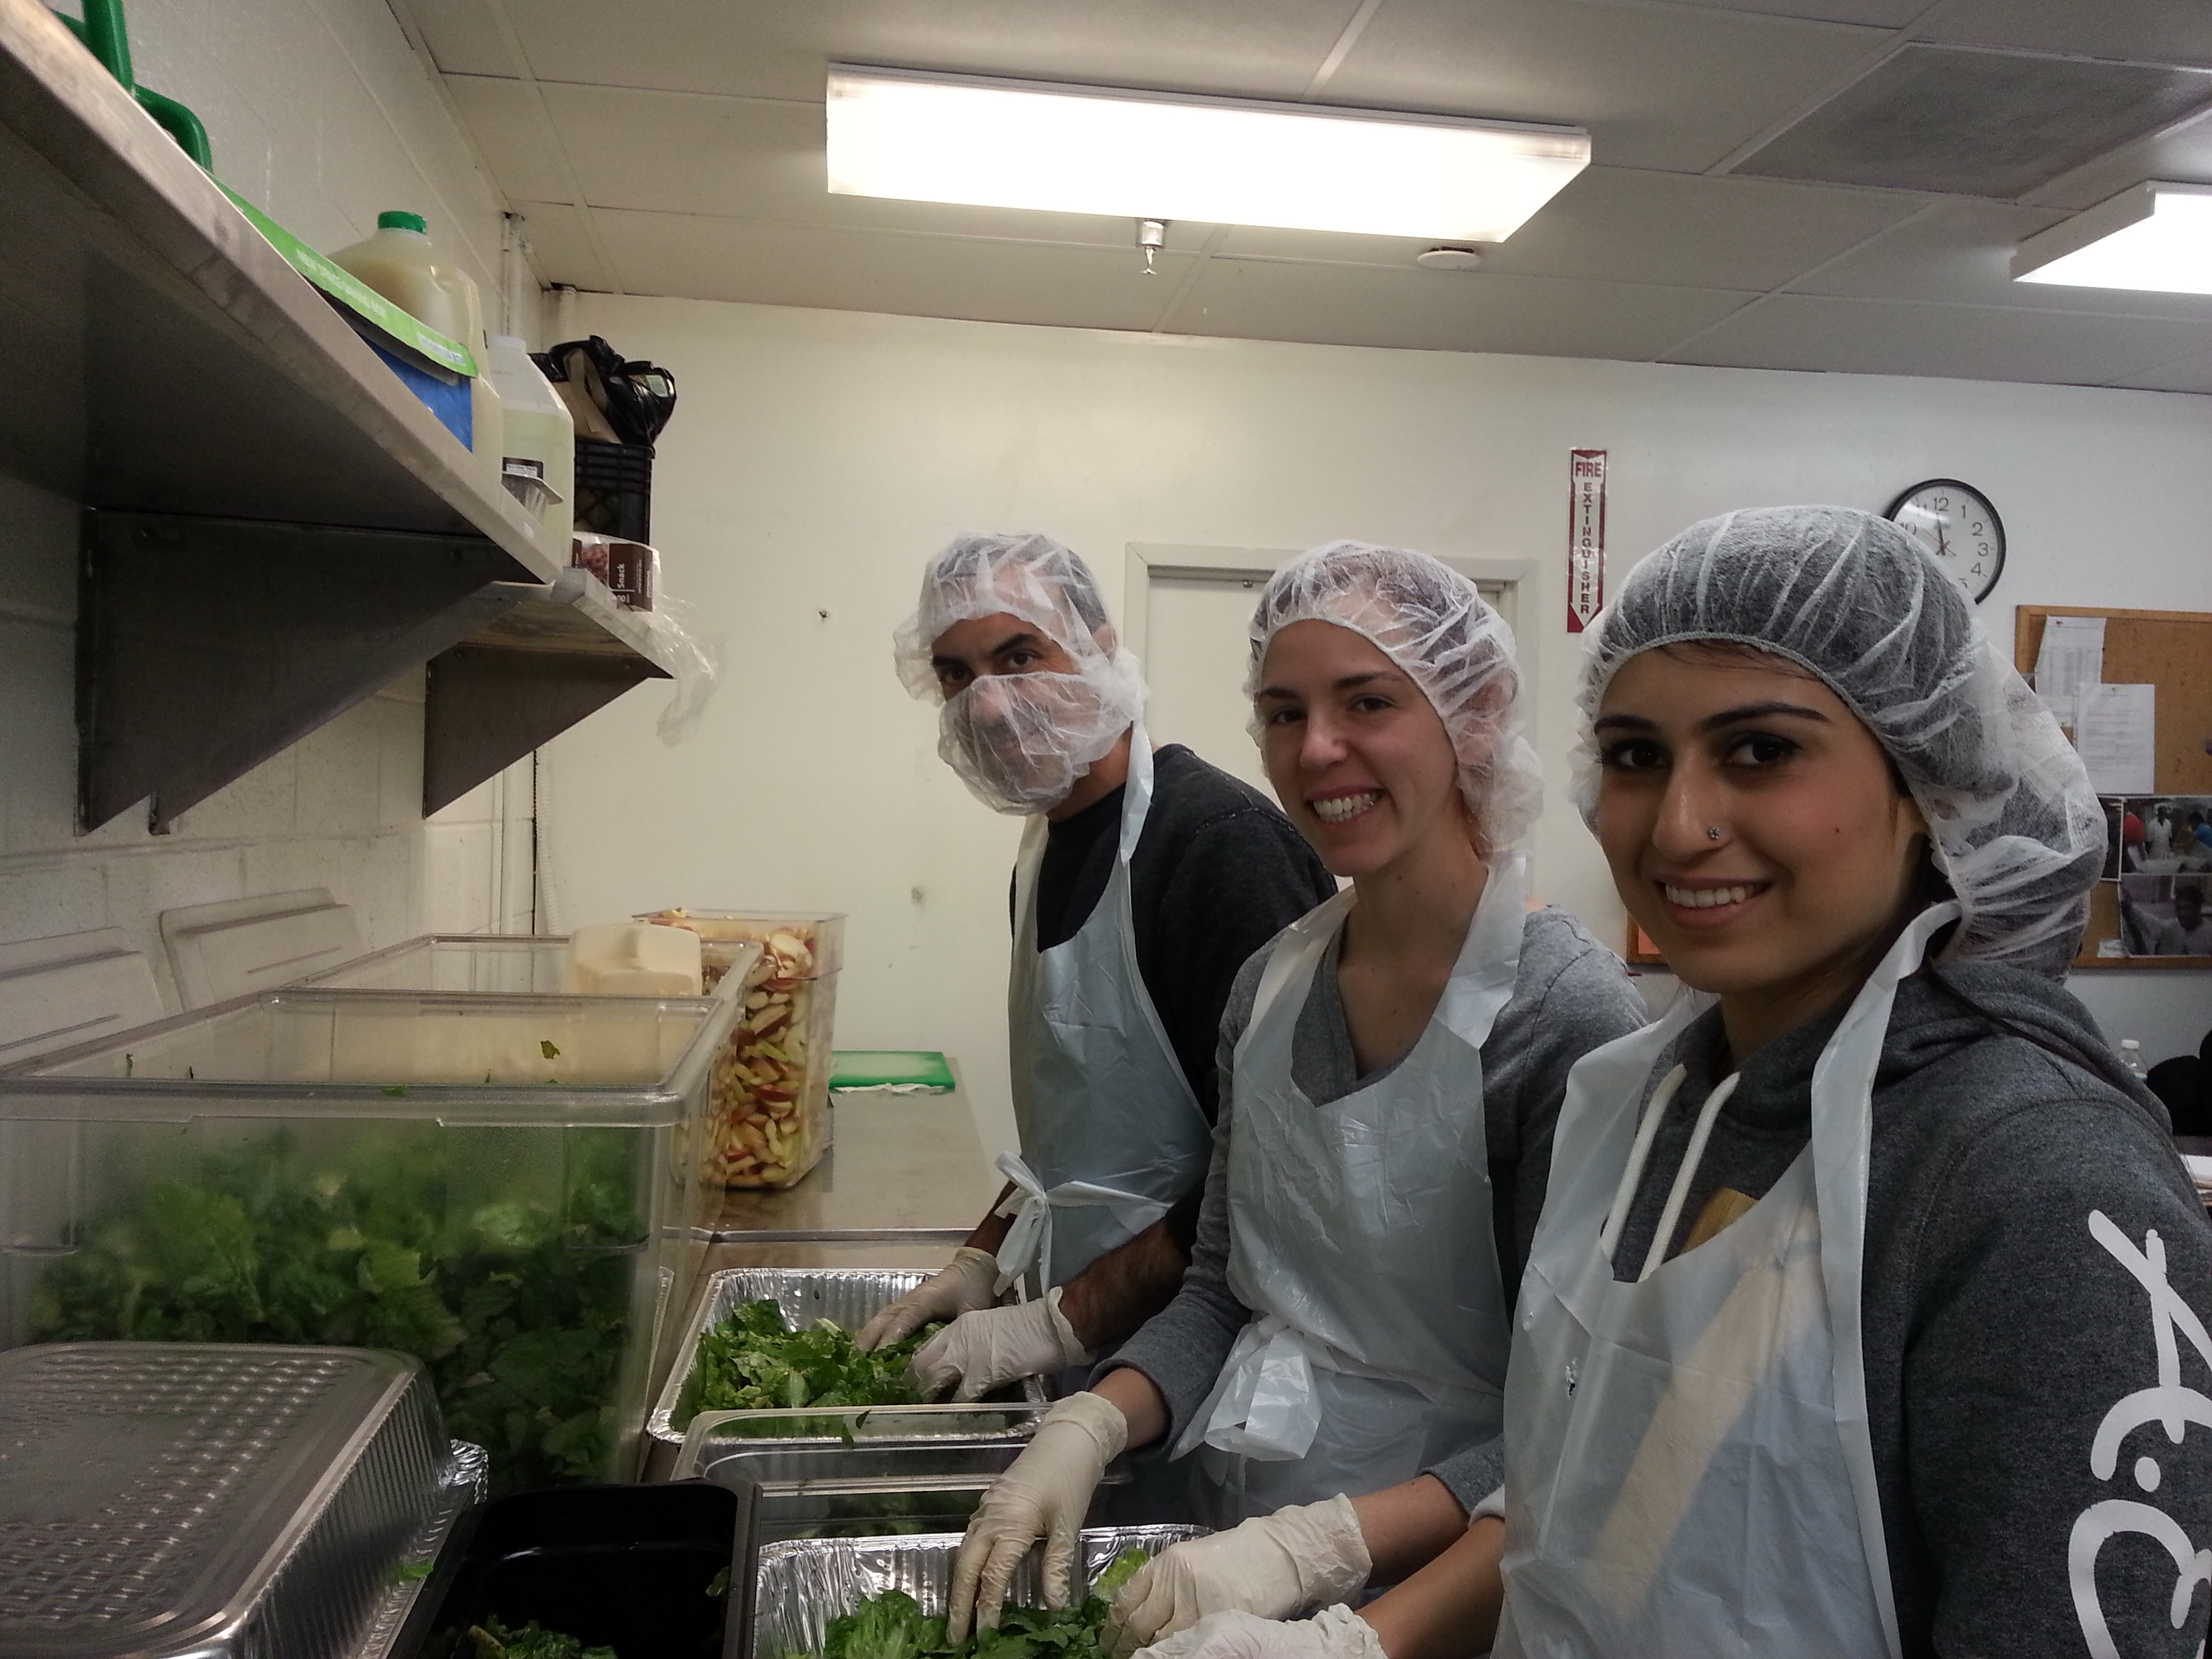 sundas liaqat with other volunteers at dc central kitchen cleaning salad leaves to help prepare meal - Dc Central Kitchen